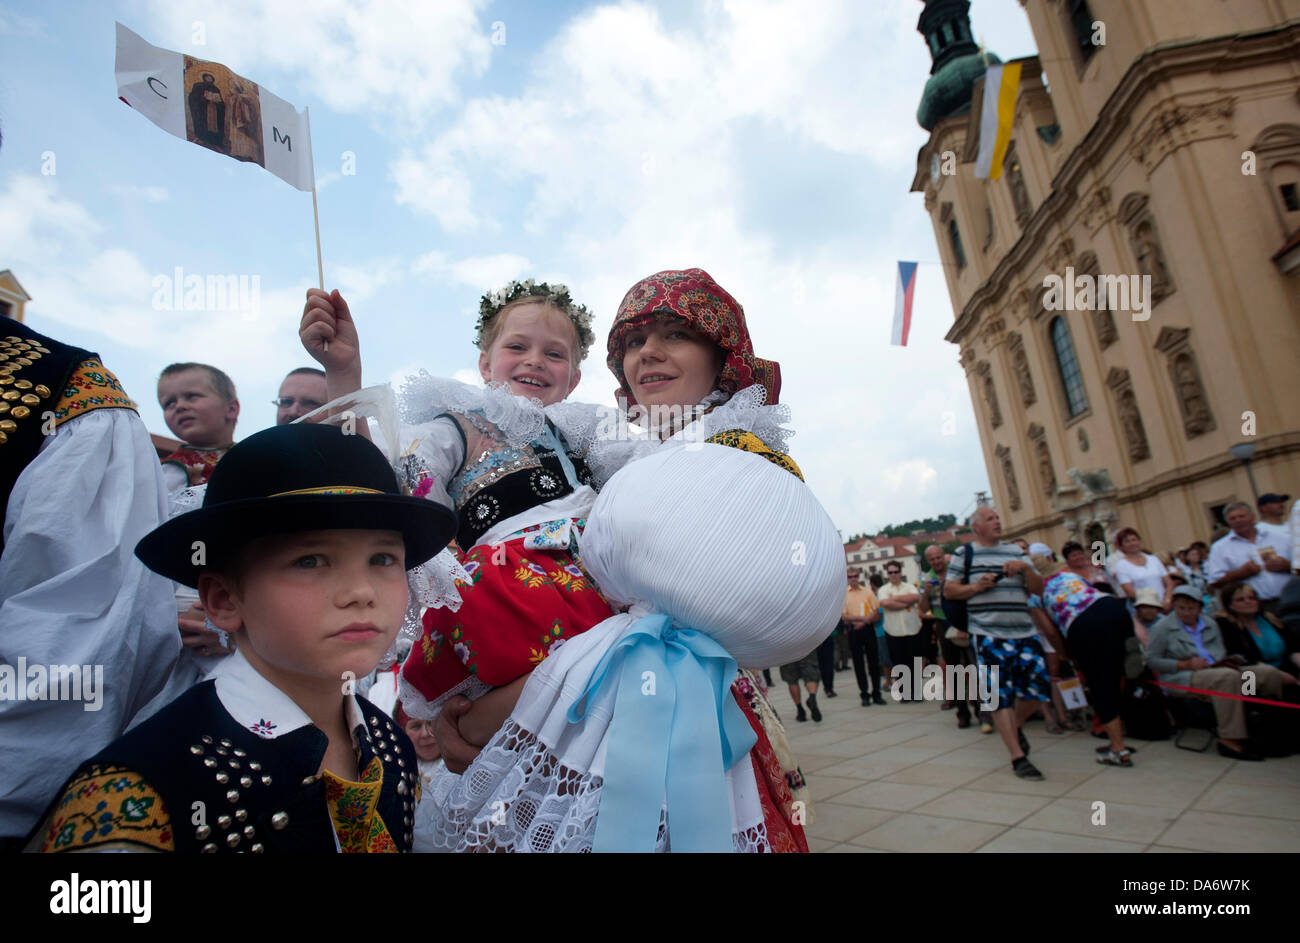 Pilgrims in national costumes celebrate the 1150th anniversary of the arrival of Cyril and Methodius, Christian - Stock Image